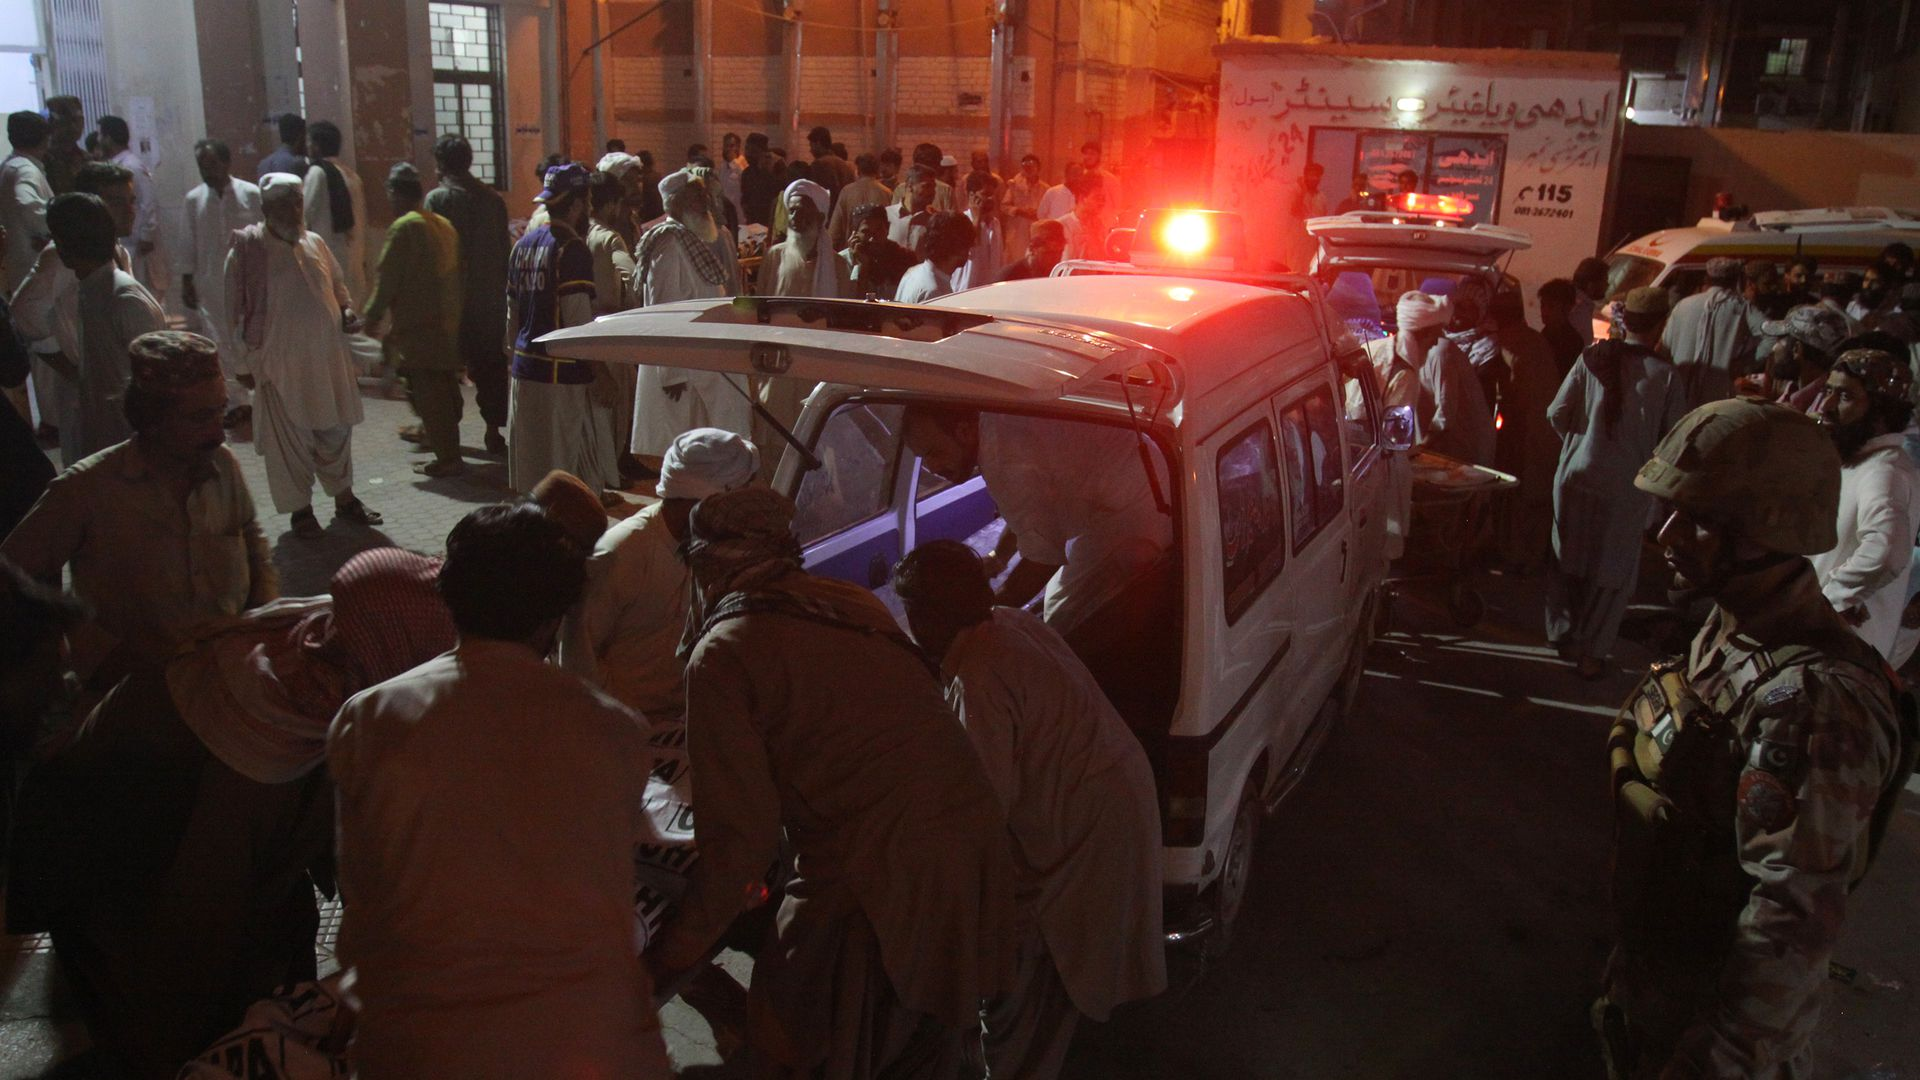 Rescue worker preparing to transport the injured and dead to a hospital after a suicide bombing in Pakistan.